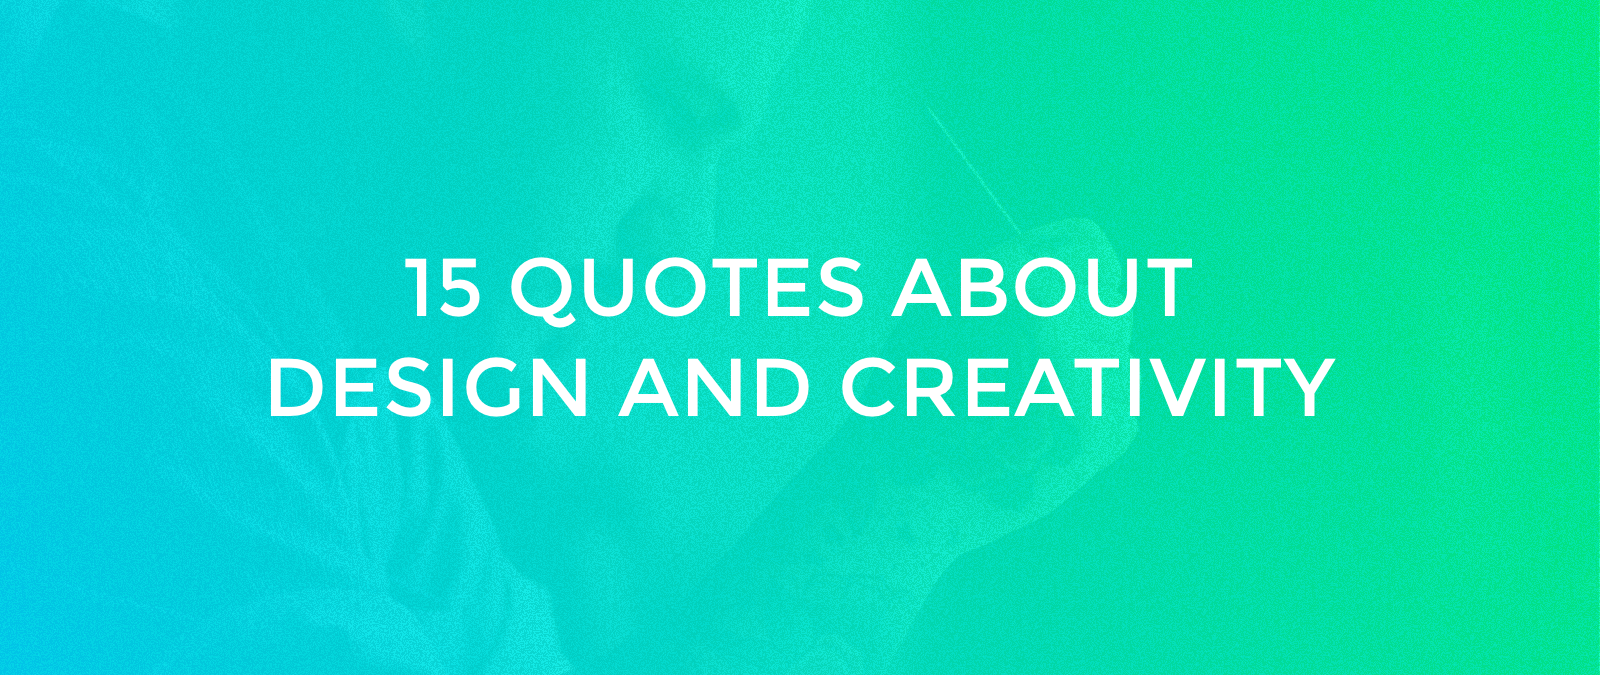 Quotes On Creativity Alluring 15 Quotes About Design And Creativity  Website Elements  Pinterest . Inspiration Design